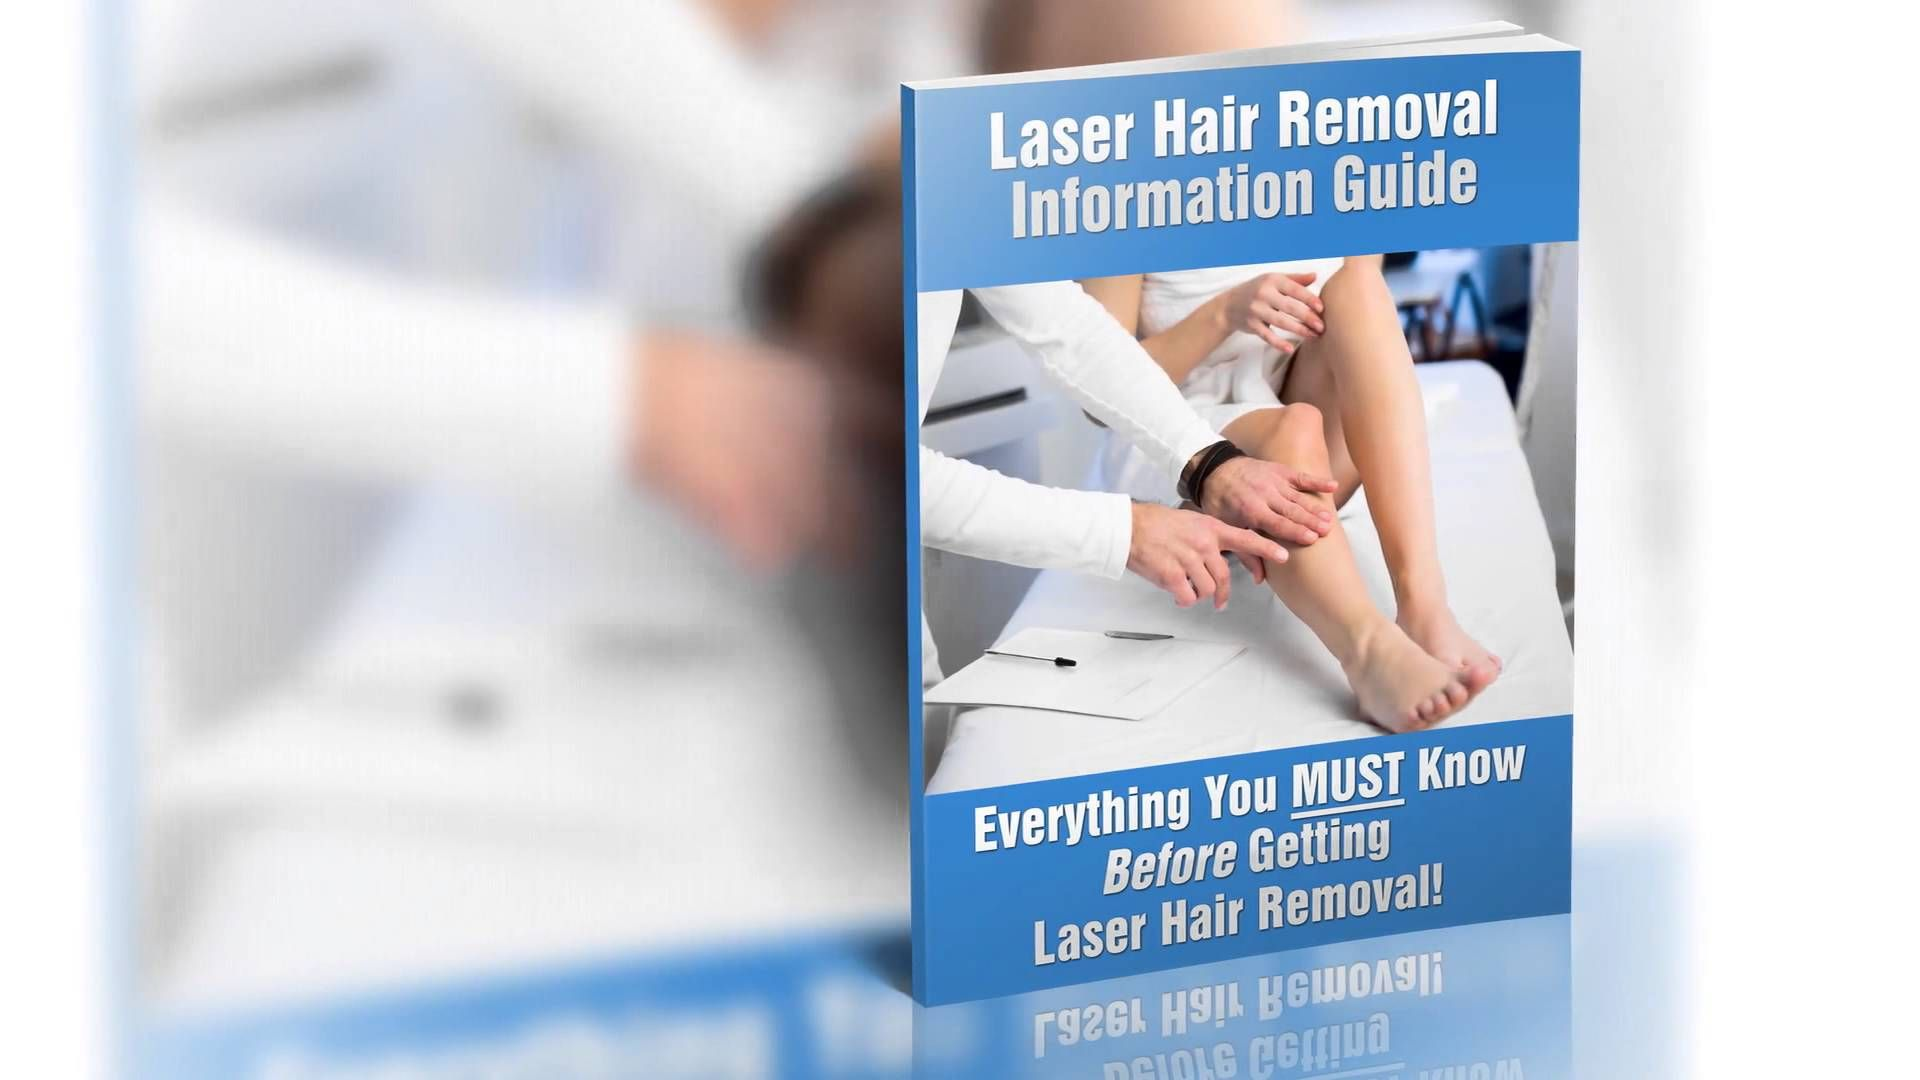 Las Vegas Laser Hair Removal Information Guide. By